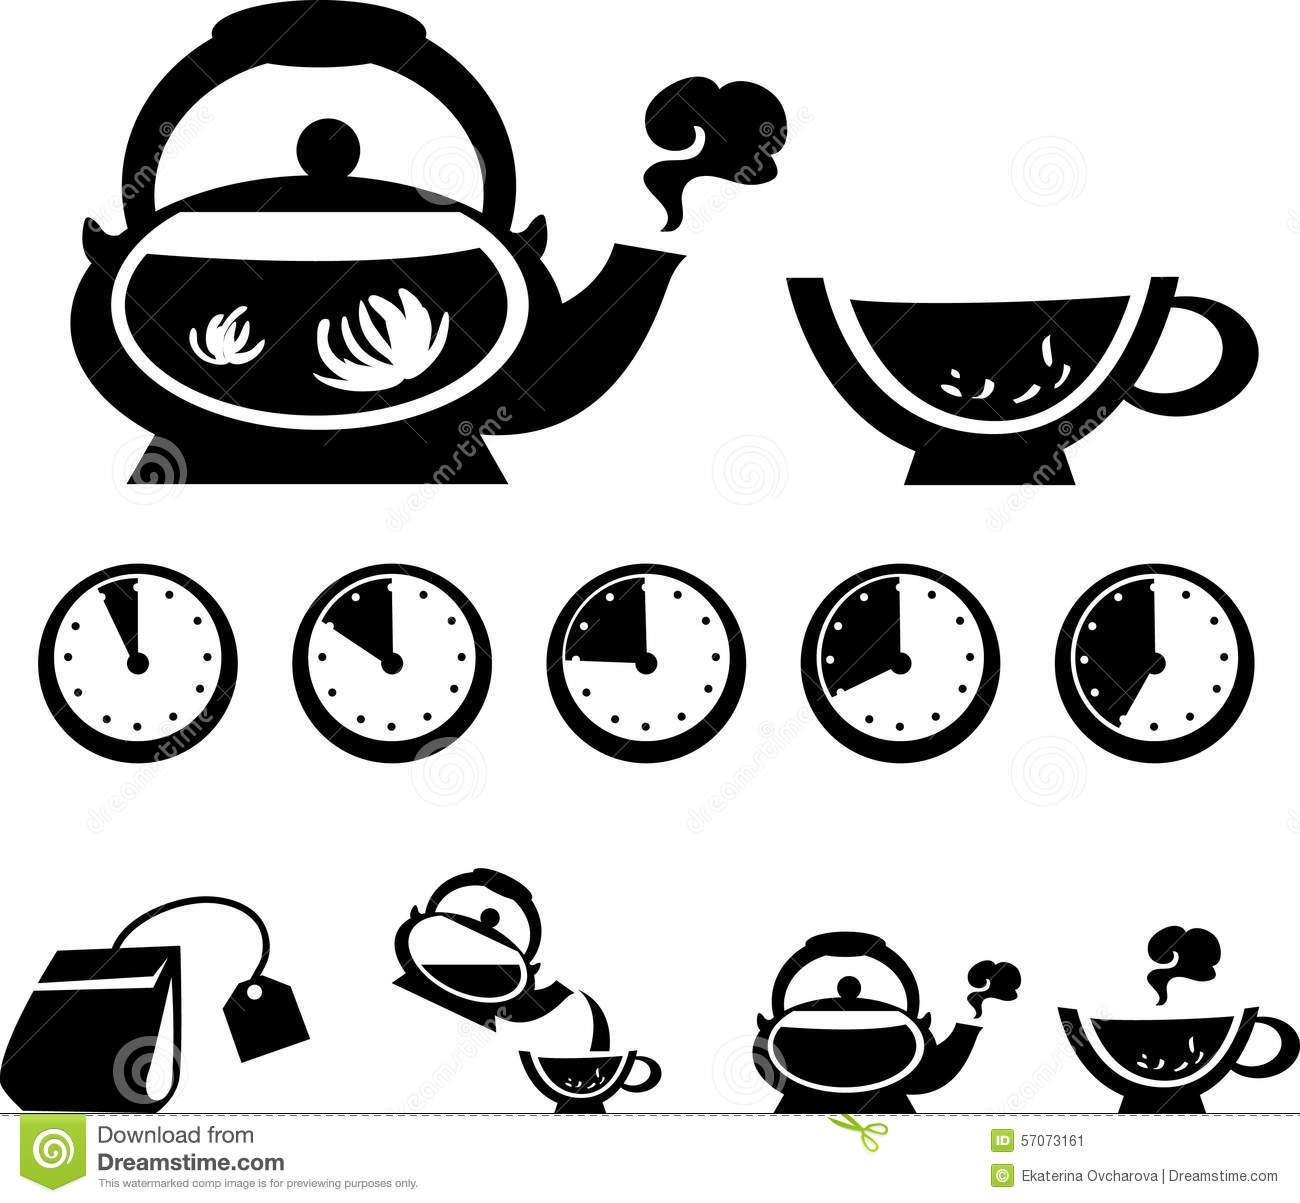 Instructions for making tea, vector icons